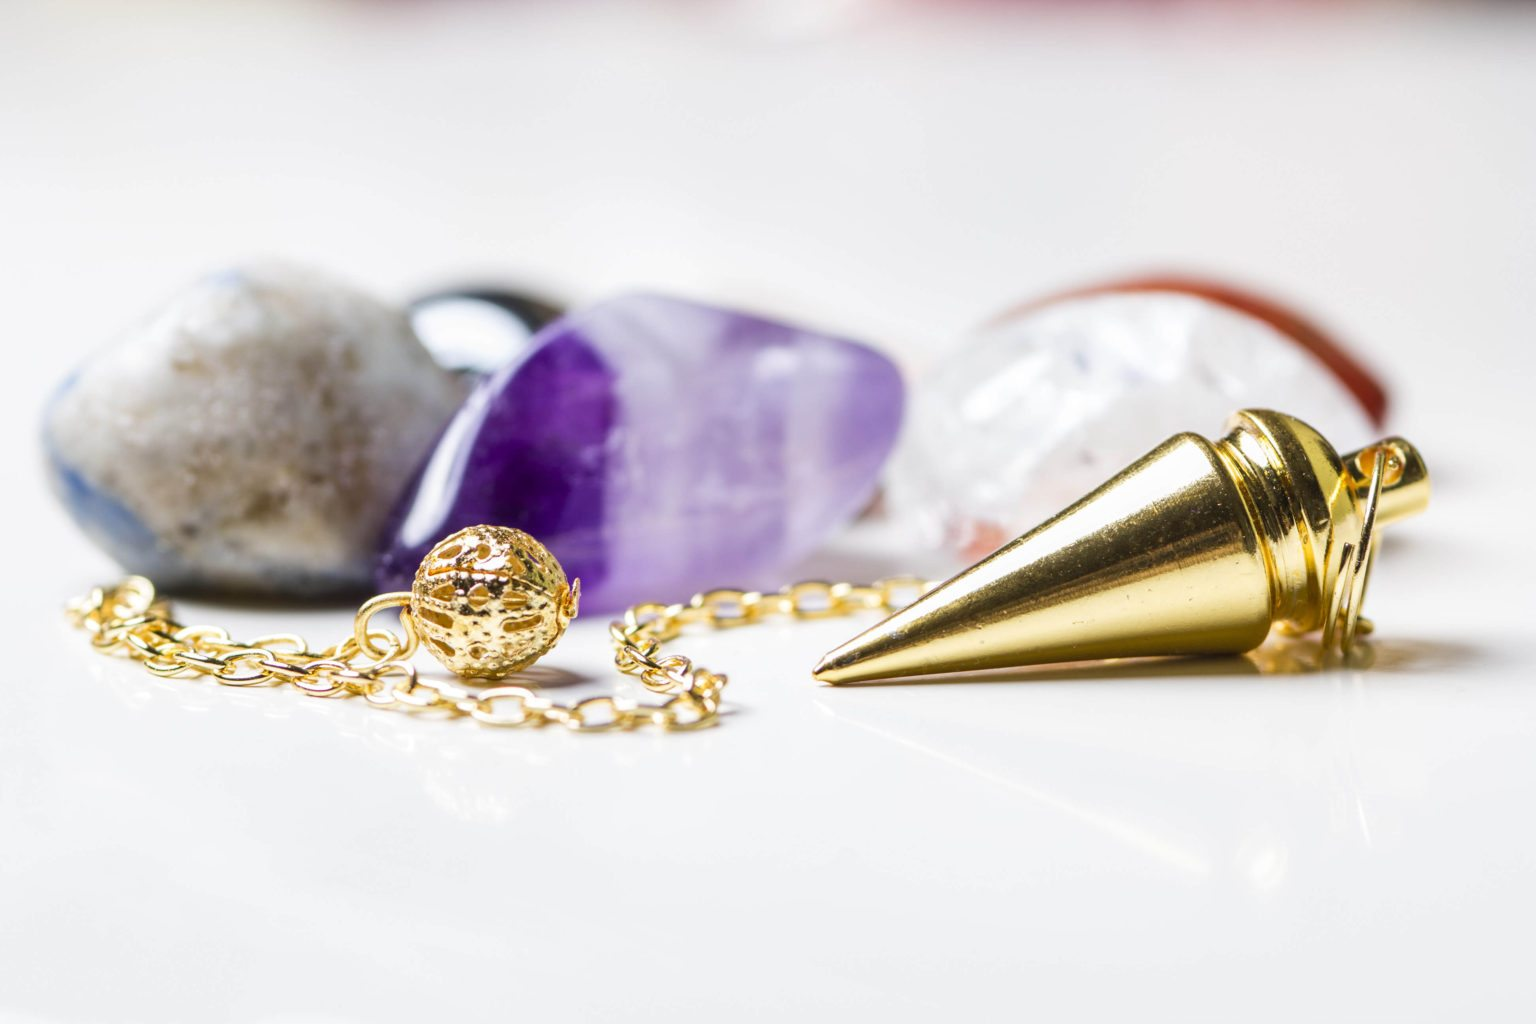 The remarkable things your pendulum reading can reveal